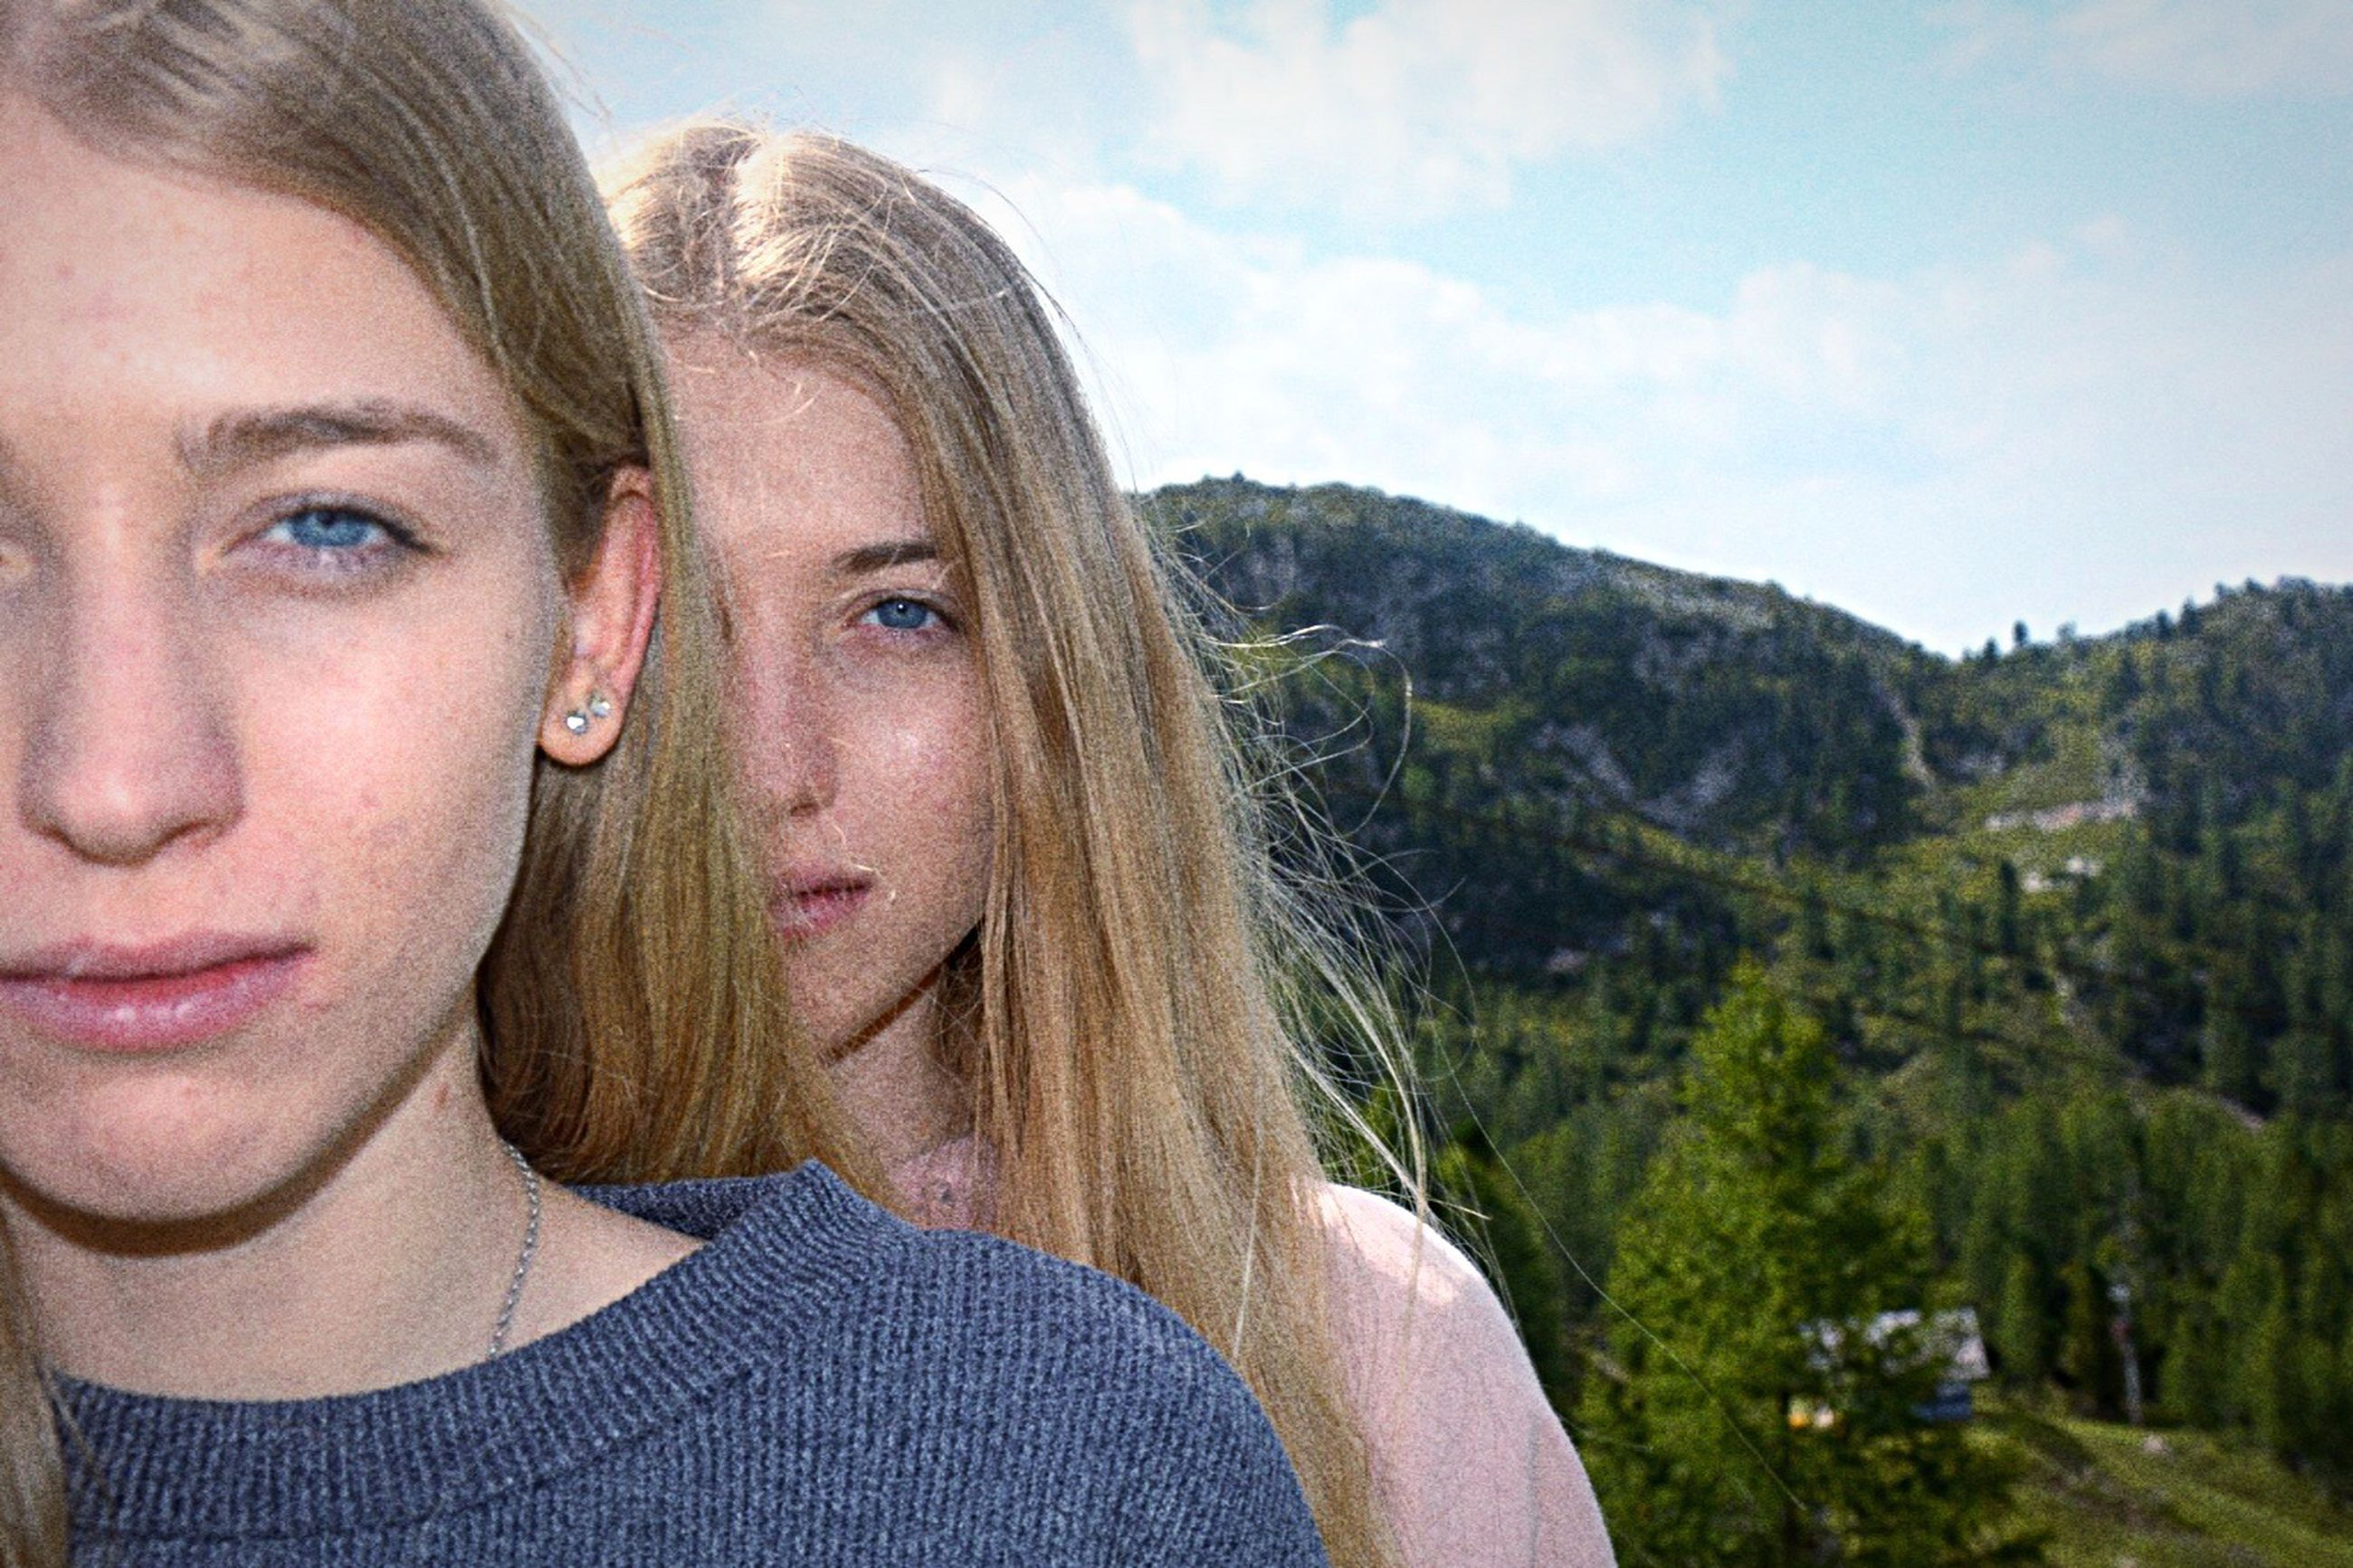 two people, togetherness, headshot, looking at camera, portrait, day, front view, women, young women, real people, outdoors, young adult, sky, blond hair, lifestyles, men, mountain, adult, nature, friendship, close-up, people, adults only